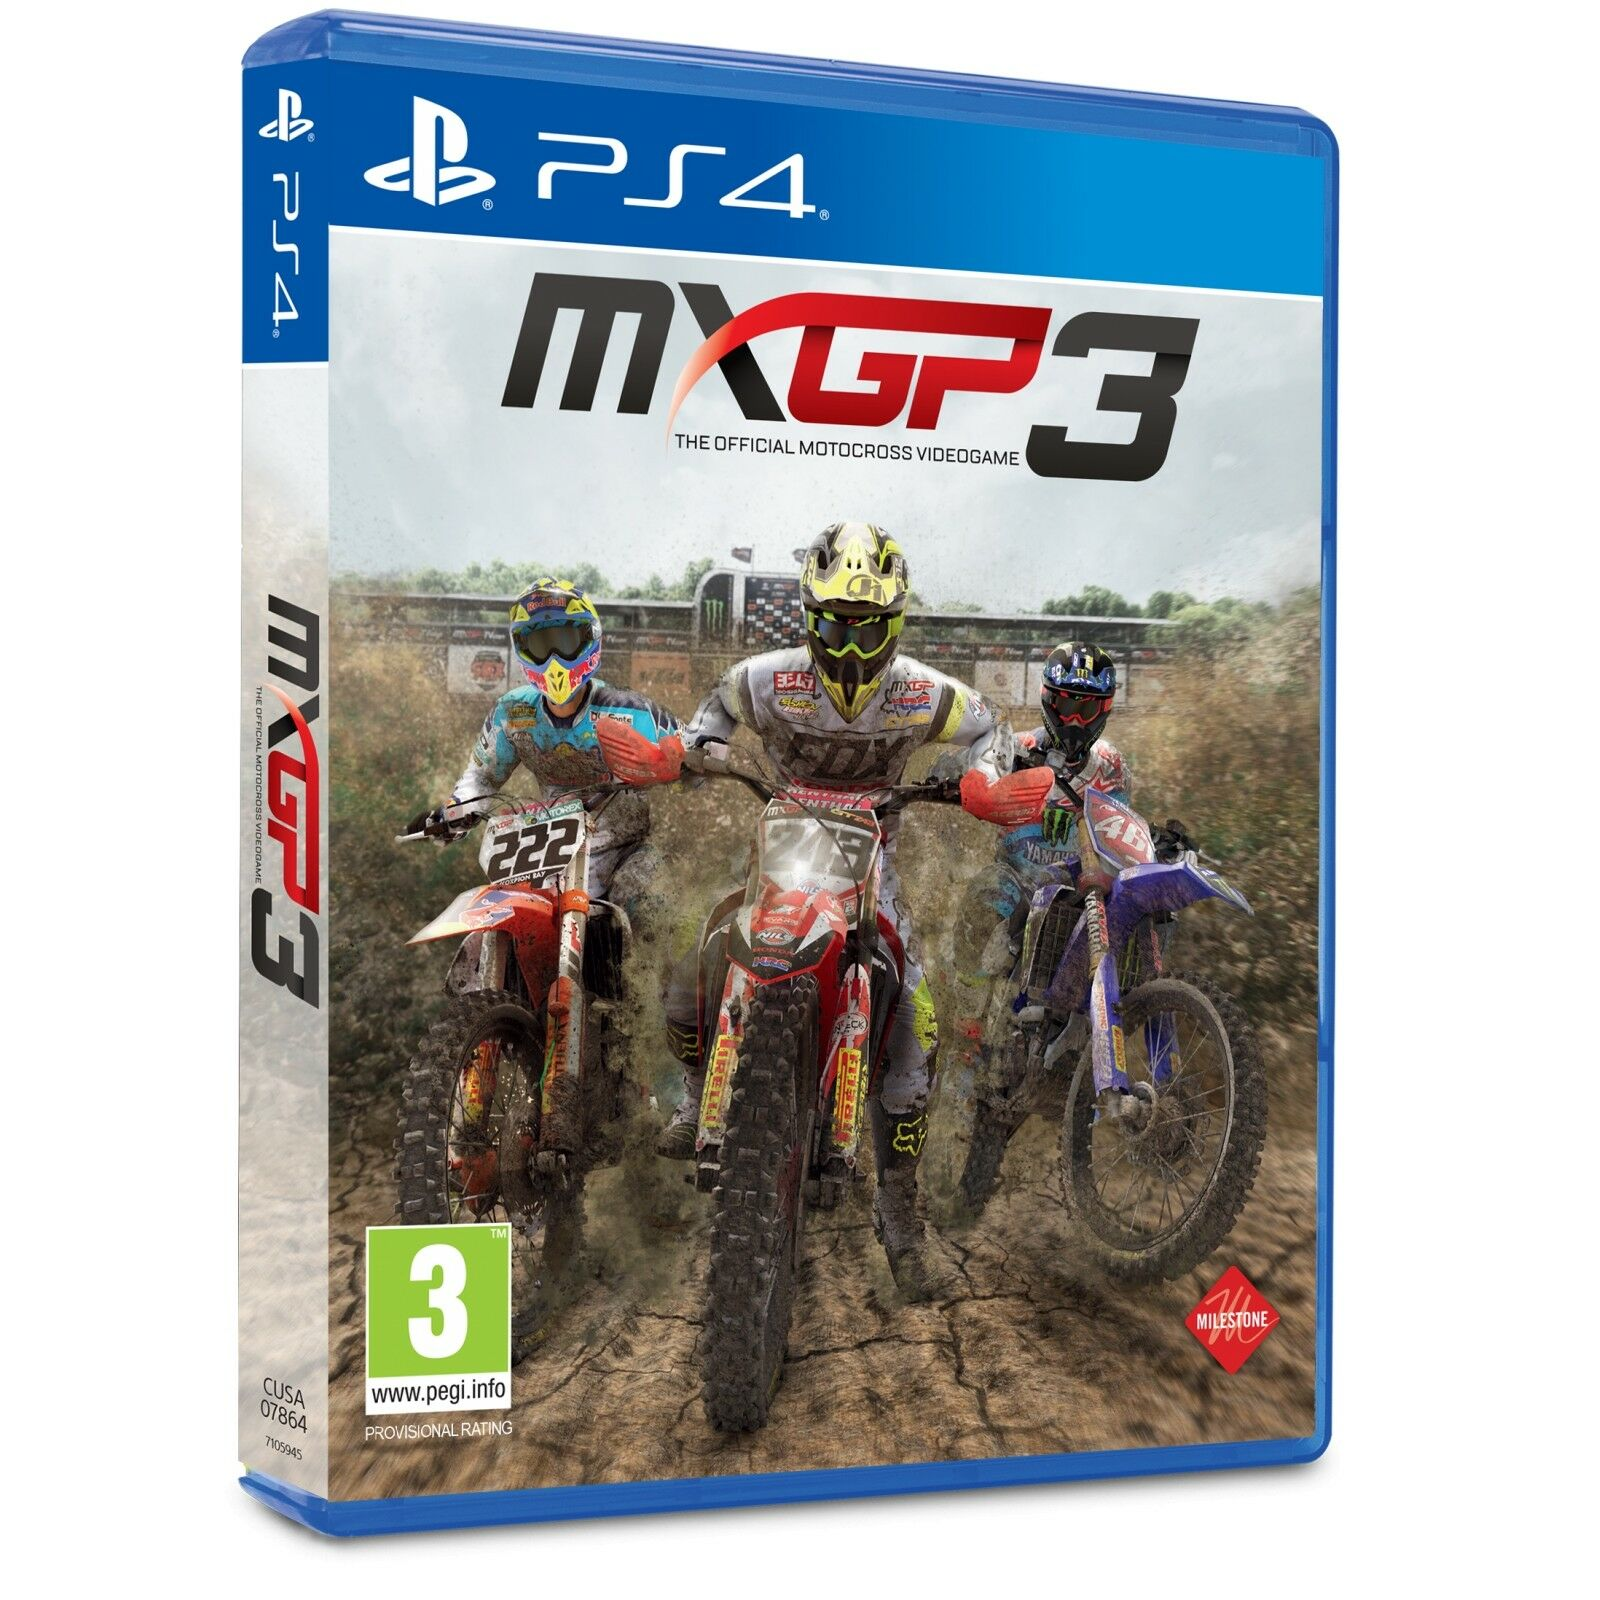 Mxgp 3 The Official Motocross Videogame Ps4 Ebay Game Mx Gp 2 Stock Photo